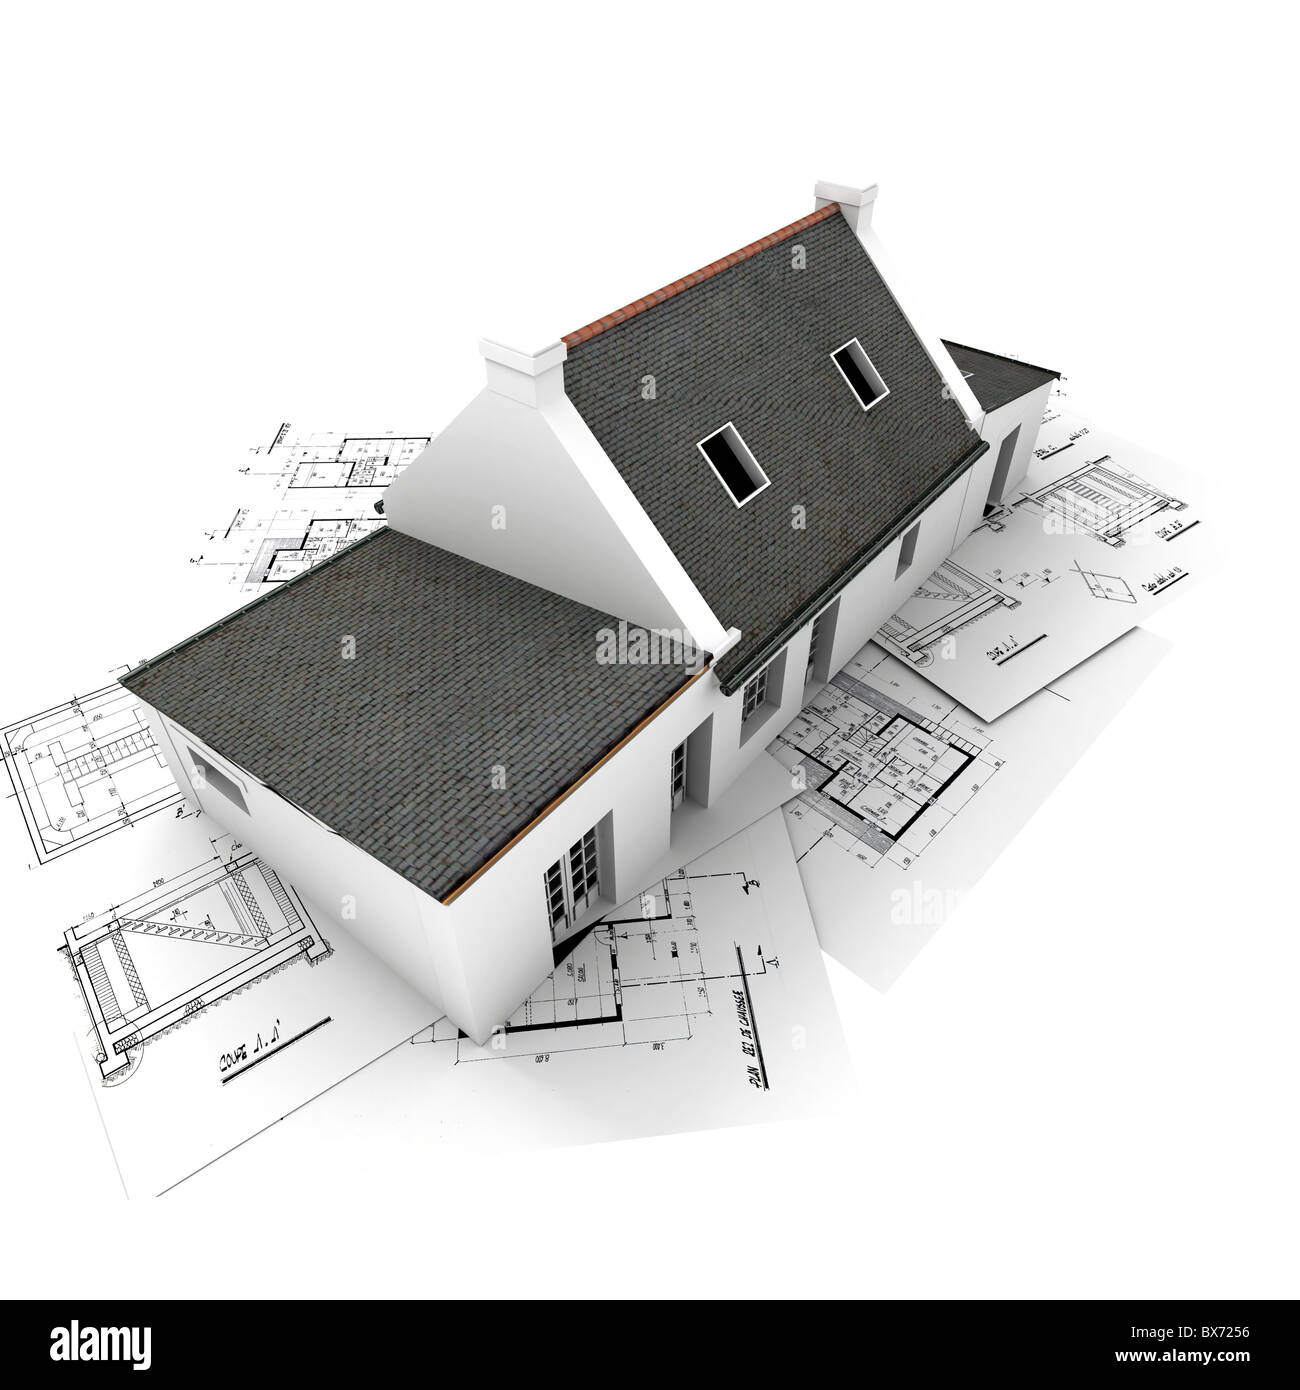 3D rendering of a house on top of architecture blueprints Stock